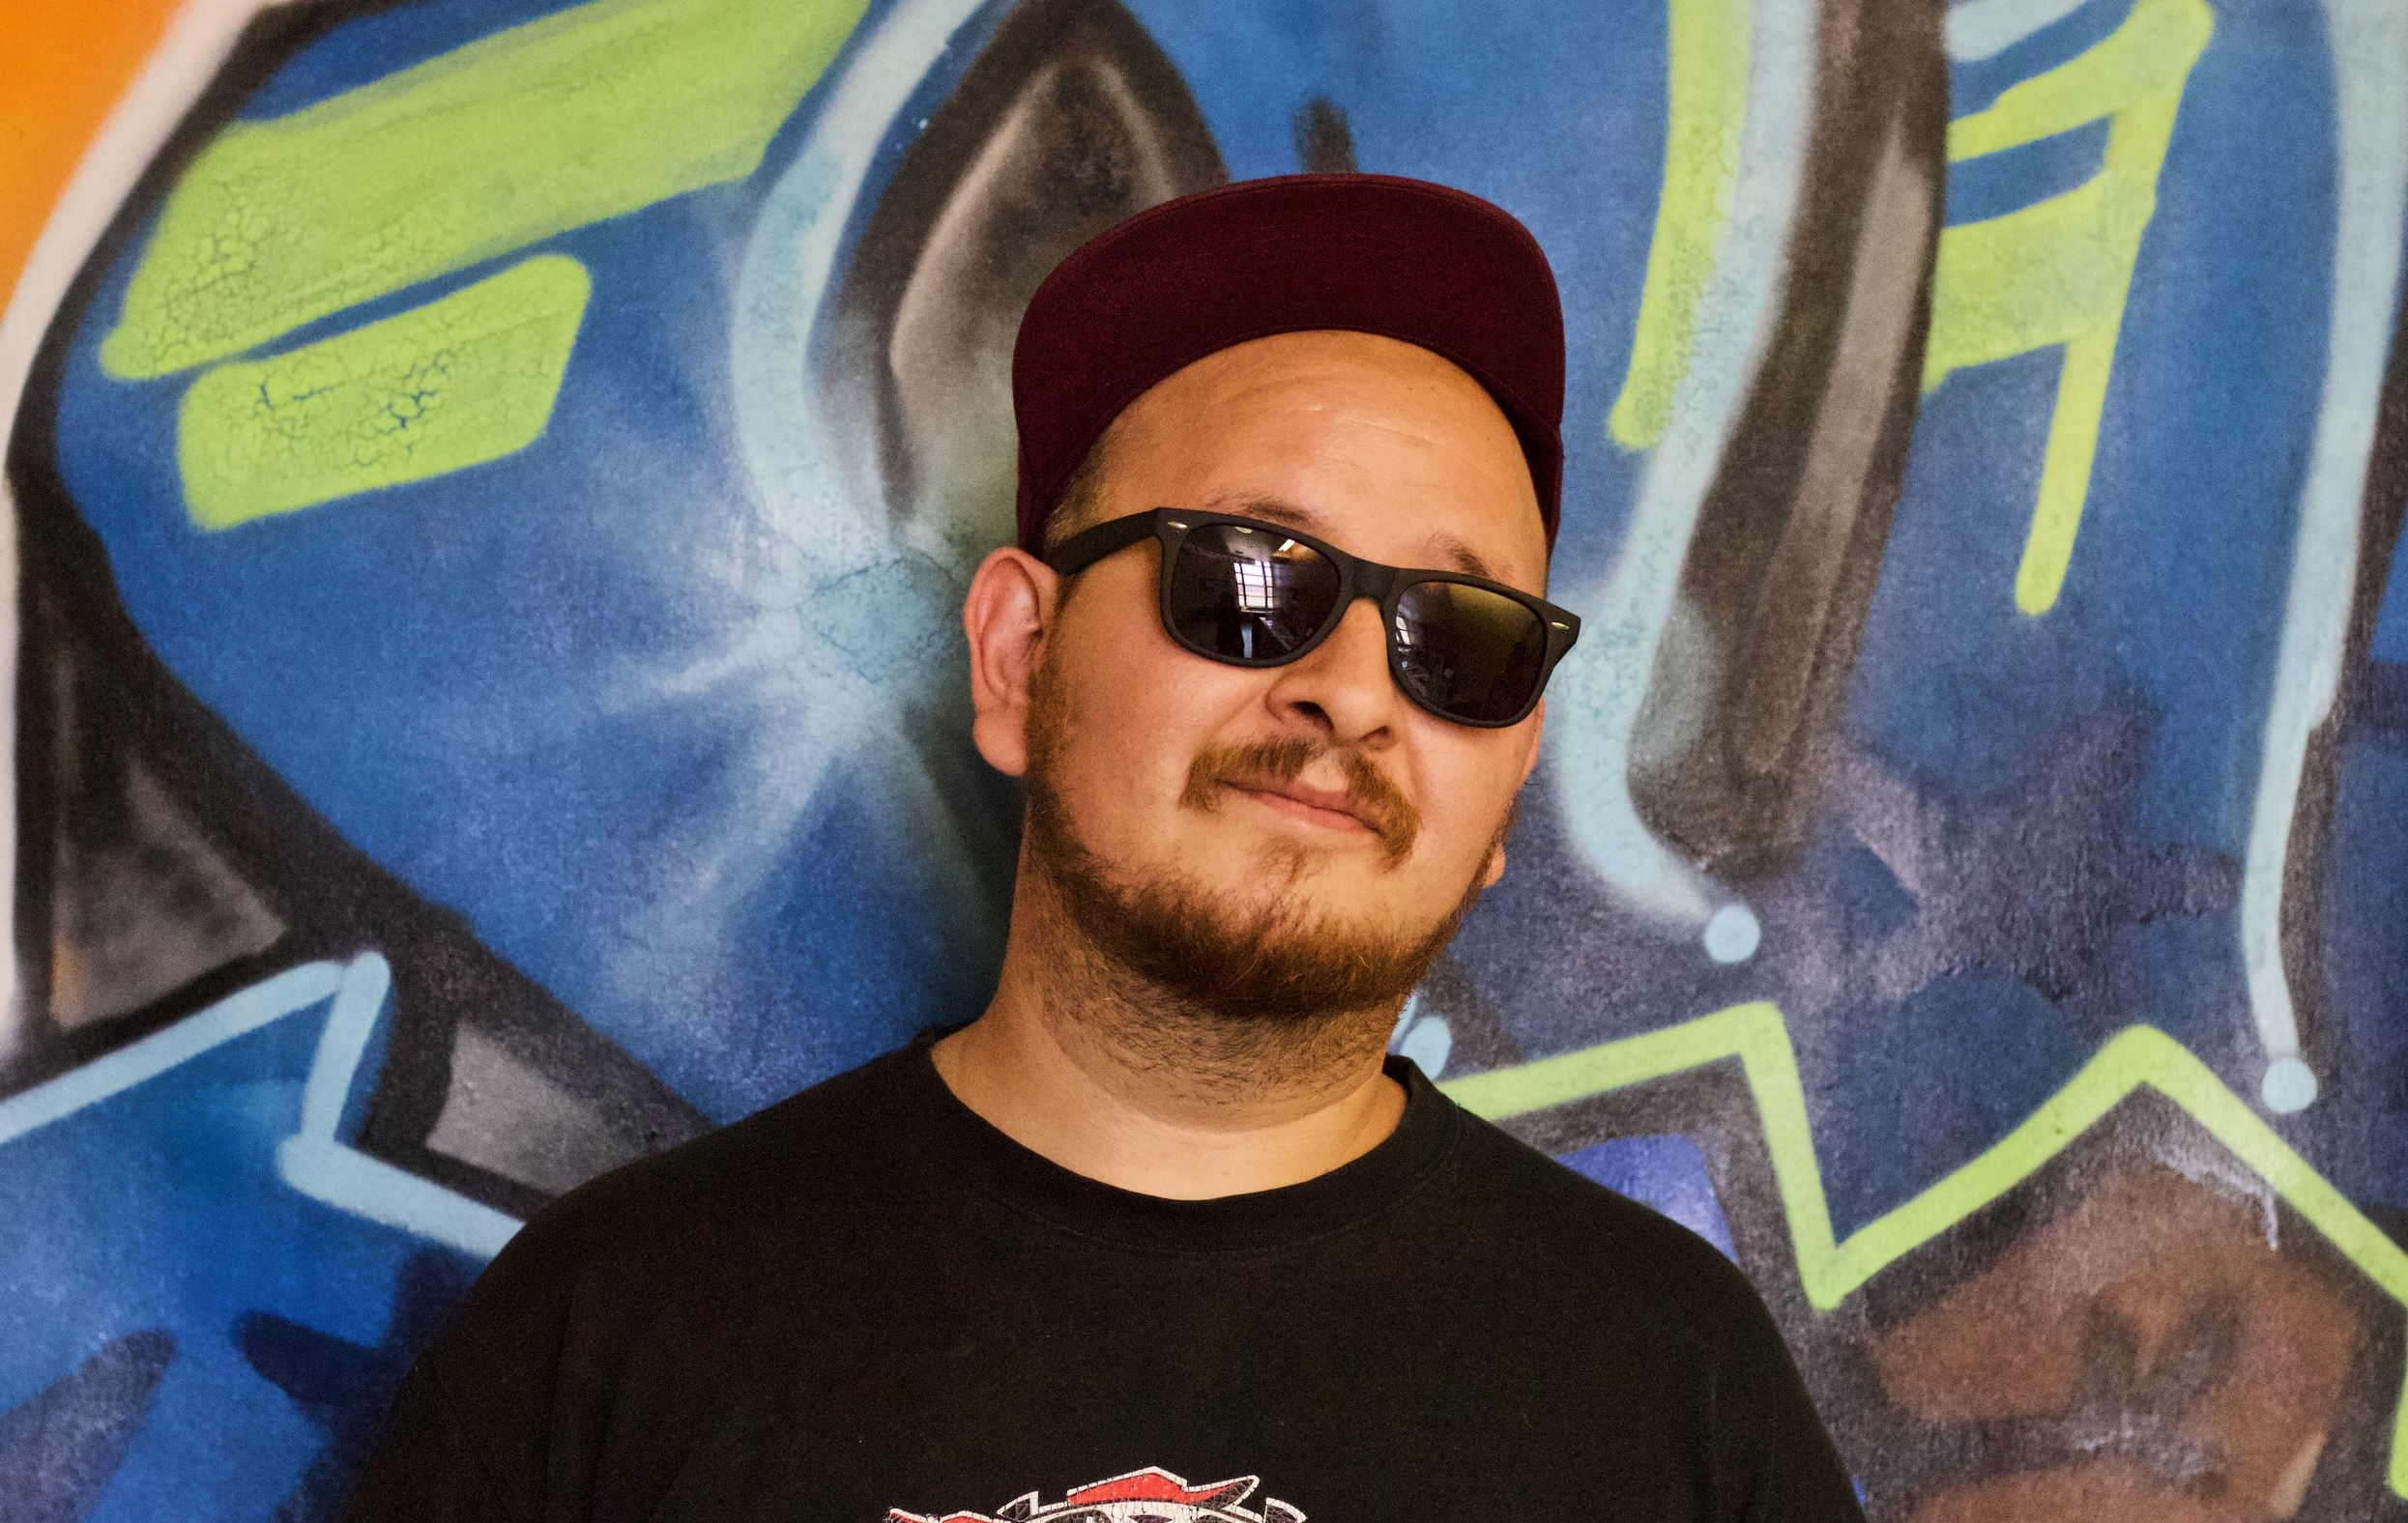 "Joshua ""Kenzo"" Aldrete has been a hip-hop D.J. for over twelve years. His artistic work also includes graphic design, visual arts instruction, and photography, all of which he has shared with J.U.i.C.E. participants for over six years. Mr. Aldrete attended Art Center of Design in Pasadena, CA. He was an art facilitator for the LAUSD Ambassador School project, and currently educates participants in DJing skills. Mr. Aldrete is a master at building bridges and expanding relationships with other artists and organizations, and his professional network has kept J.U.i.C.E. and its artists in people's minds. Since his work at J.U.i.C.E. began, he has been dedicated to supporting artists and their work to grow and flourish. As a leading organizer in the community one of the most recent accomplishments has been his directorship role as one of the primary organizers for the LA Zine Fest that brought together over 2,000 independent publishers. Mr. Aldrete will be responsible for organizing instructors and developing the DJ teaching series. In addition he will be responsible for outreach to local organizations in the community to introduce the video teaching series."